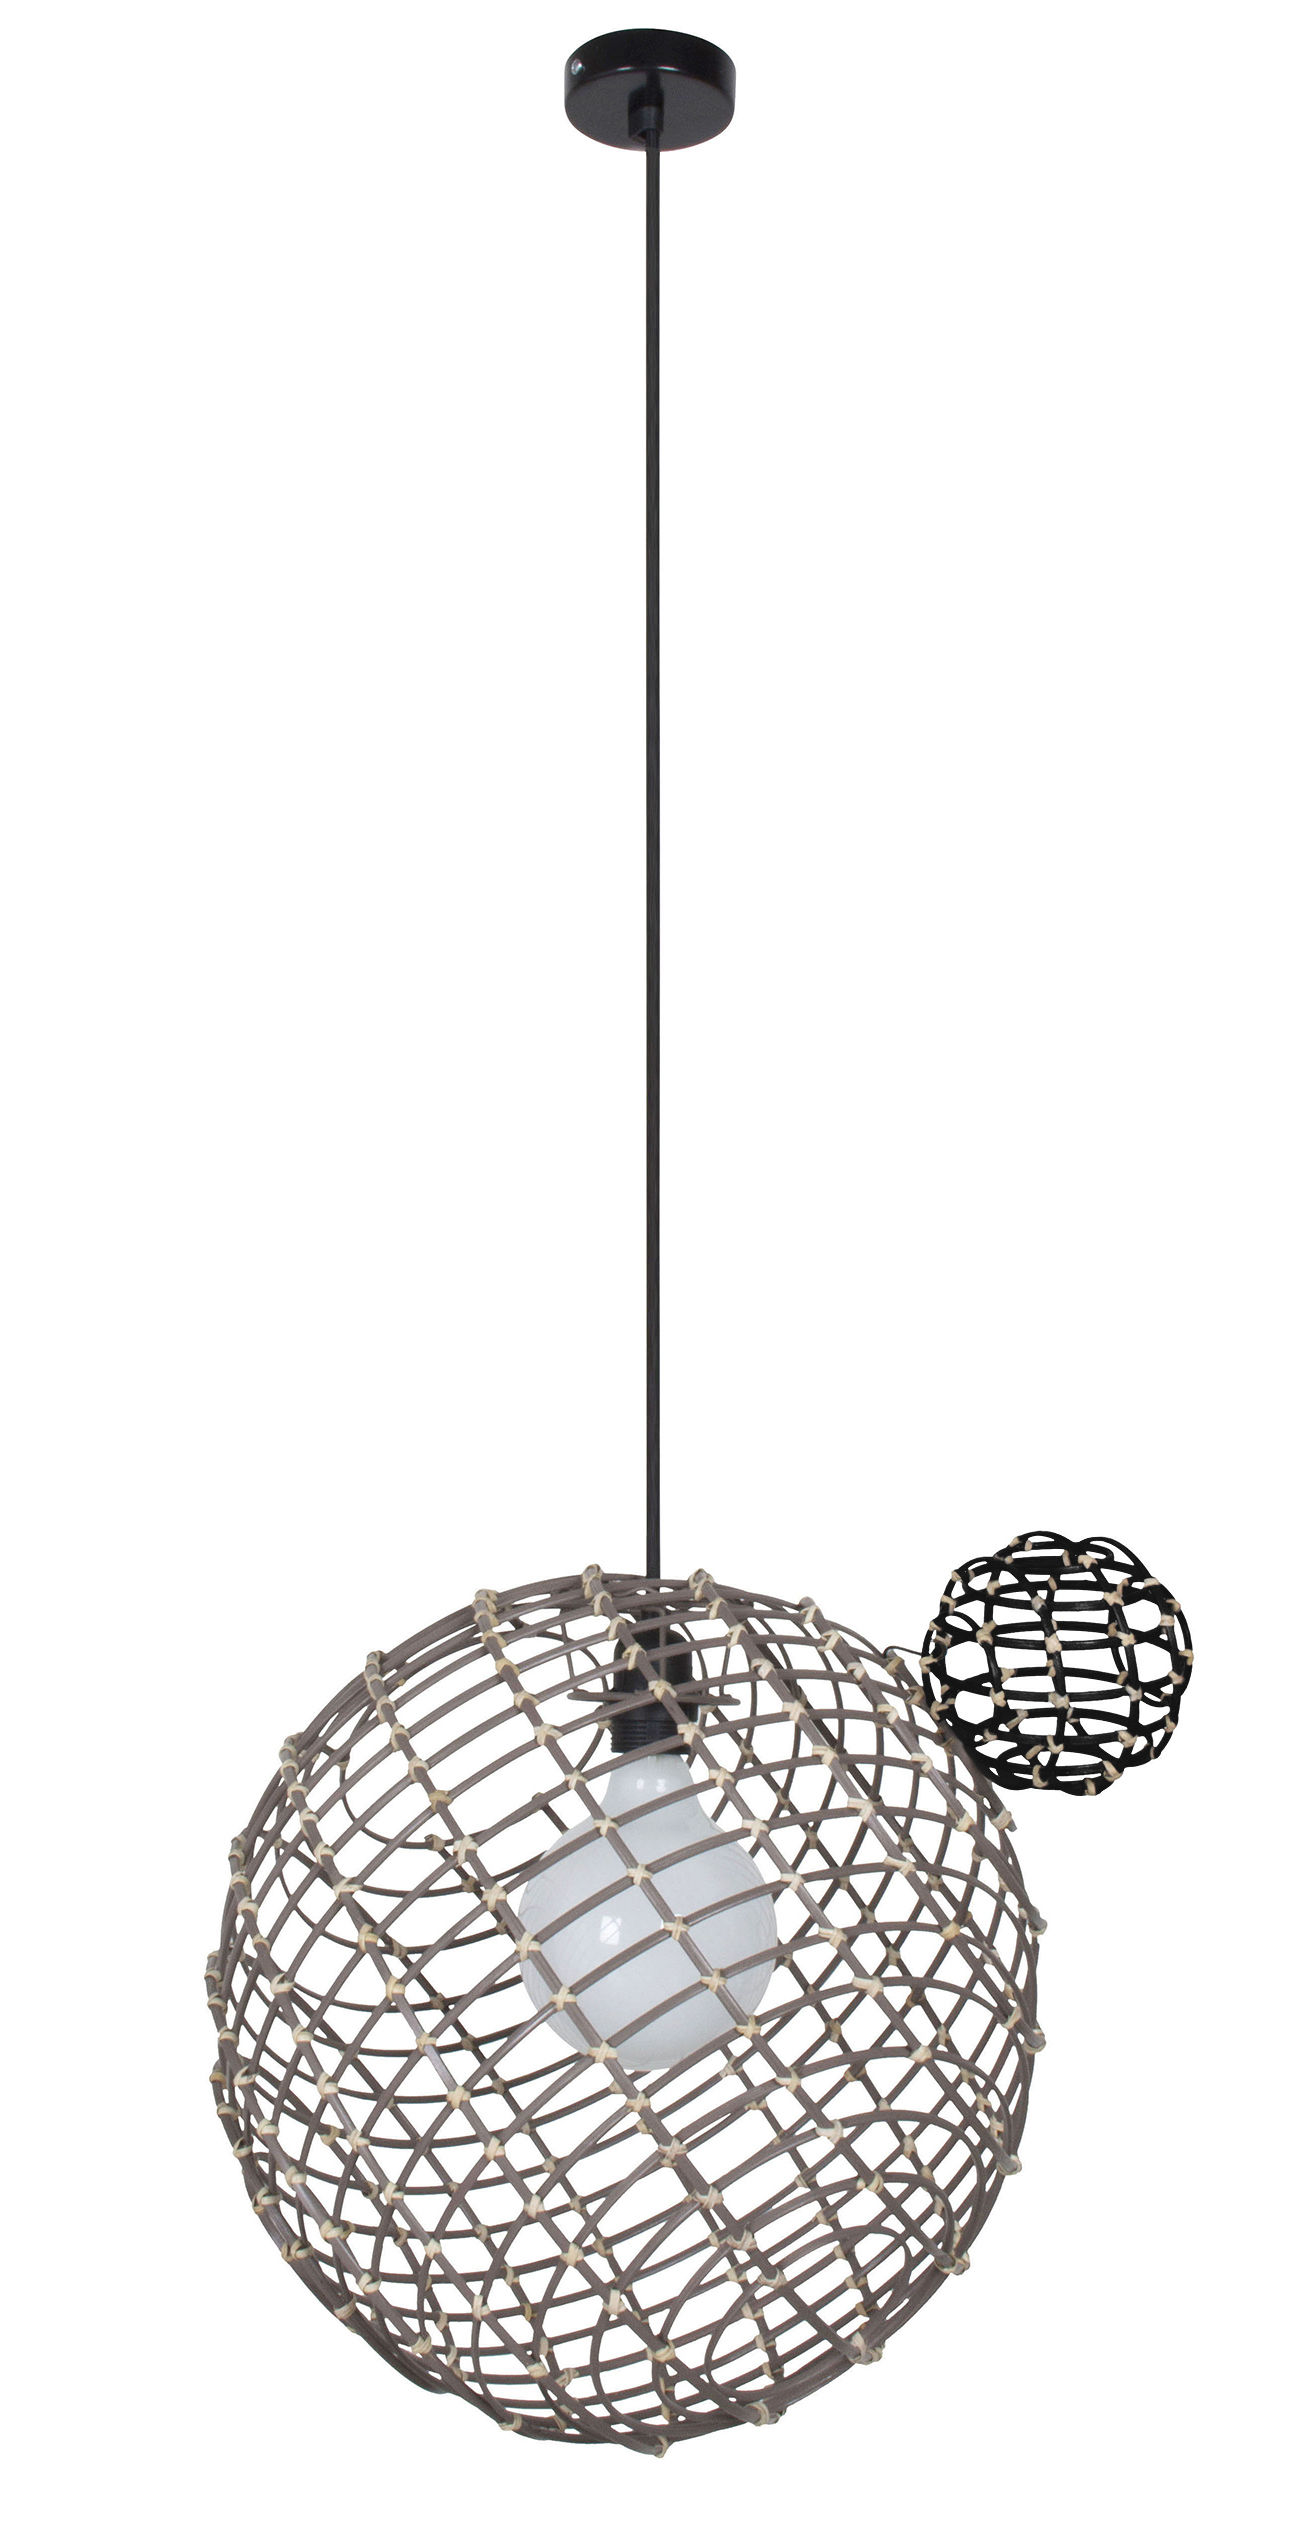 Suspension Sphere Large Bambou